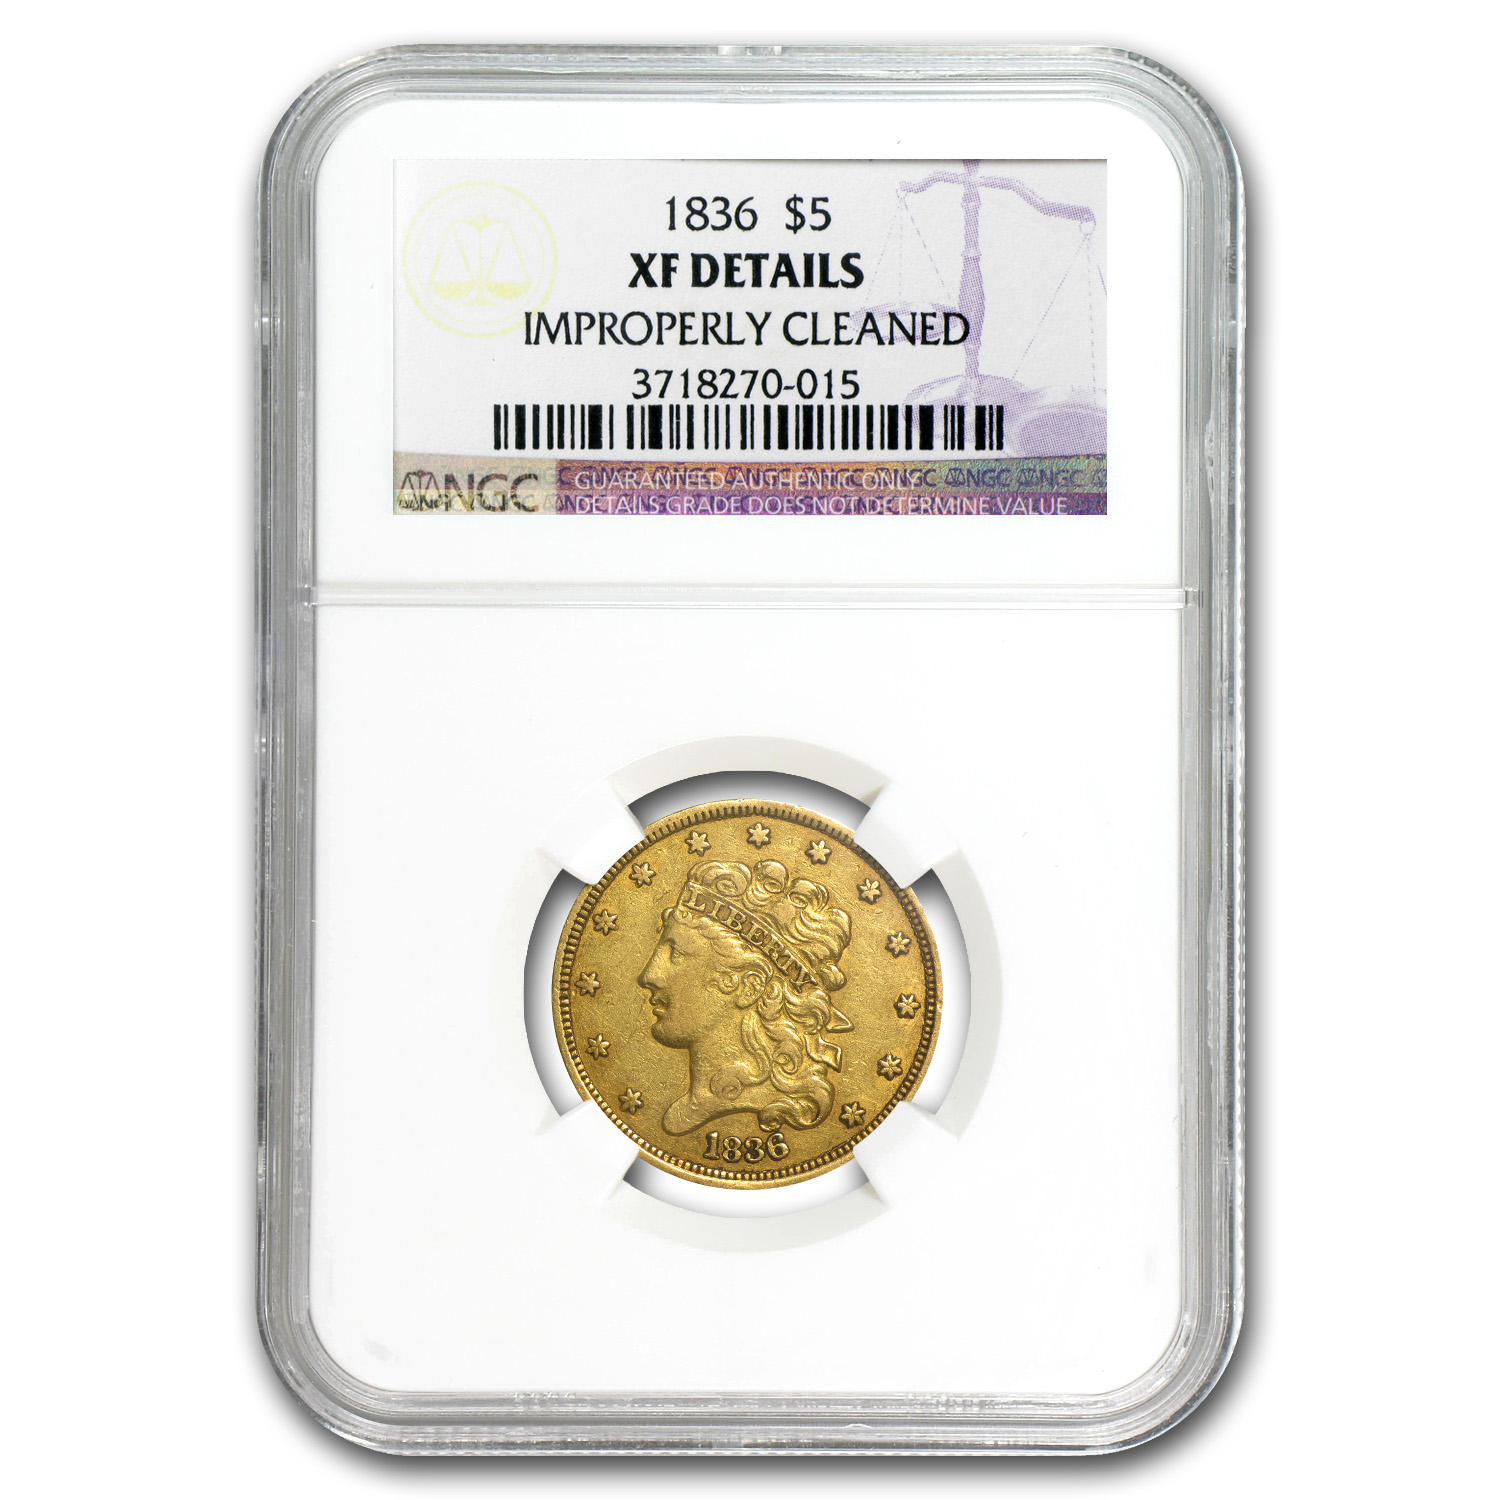 1836 $5 Gold Classic Head Half Eagle - XF Details NGC - (Cleaned)